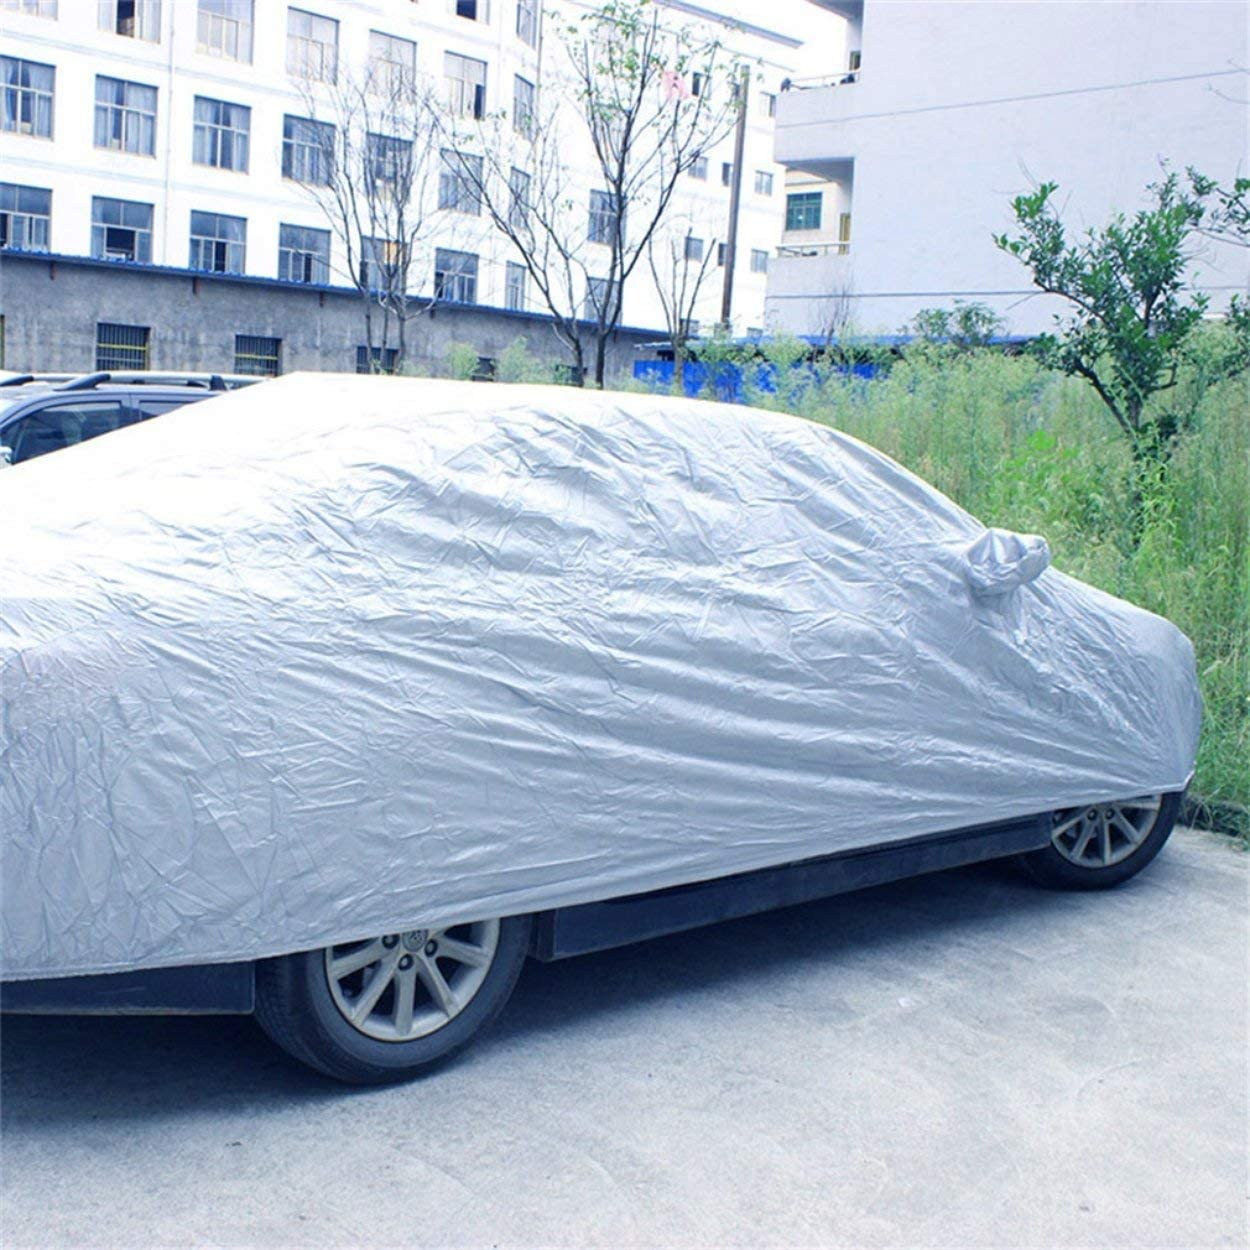 rain Wind Snow and ice car Cover Silver Protects Your car Against UV Rays